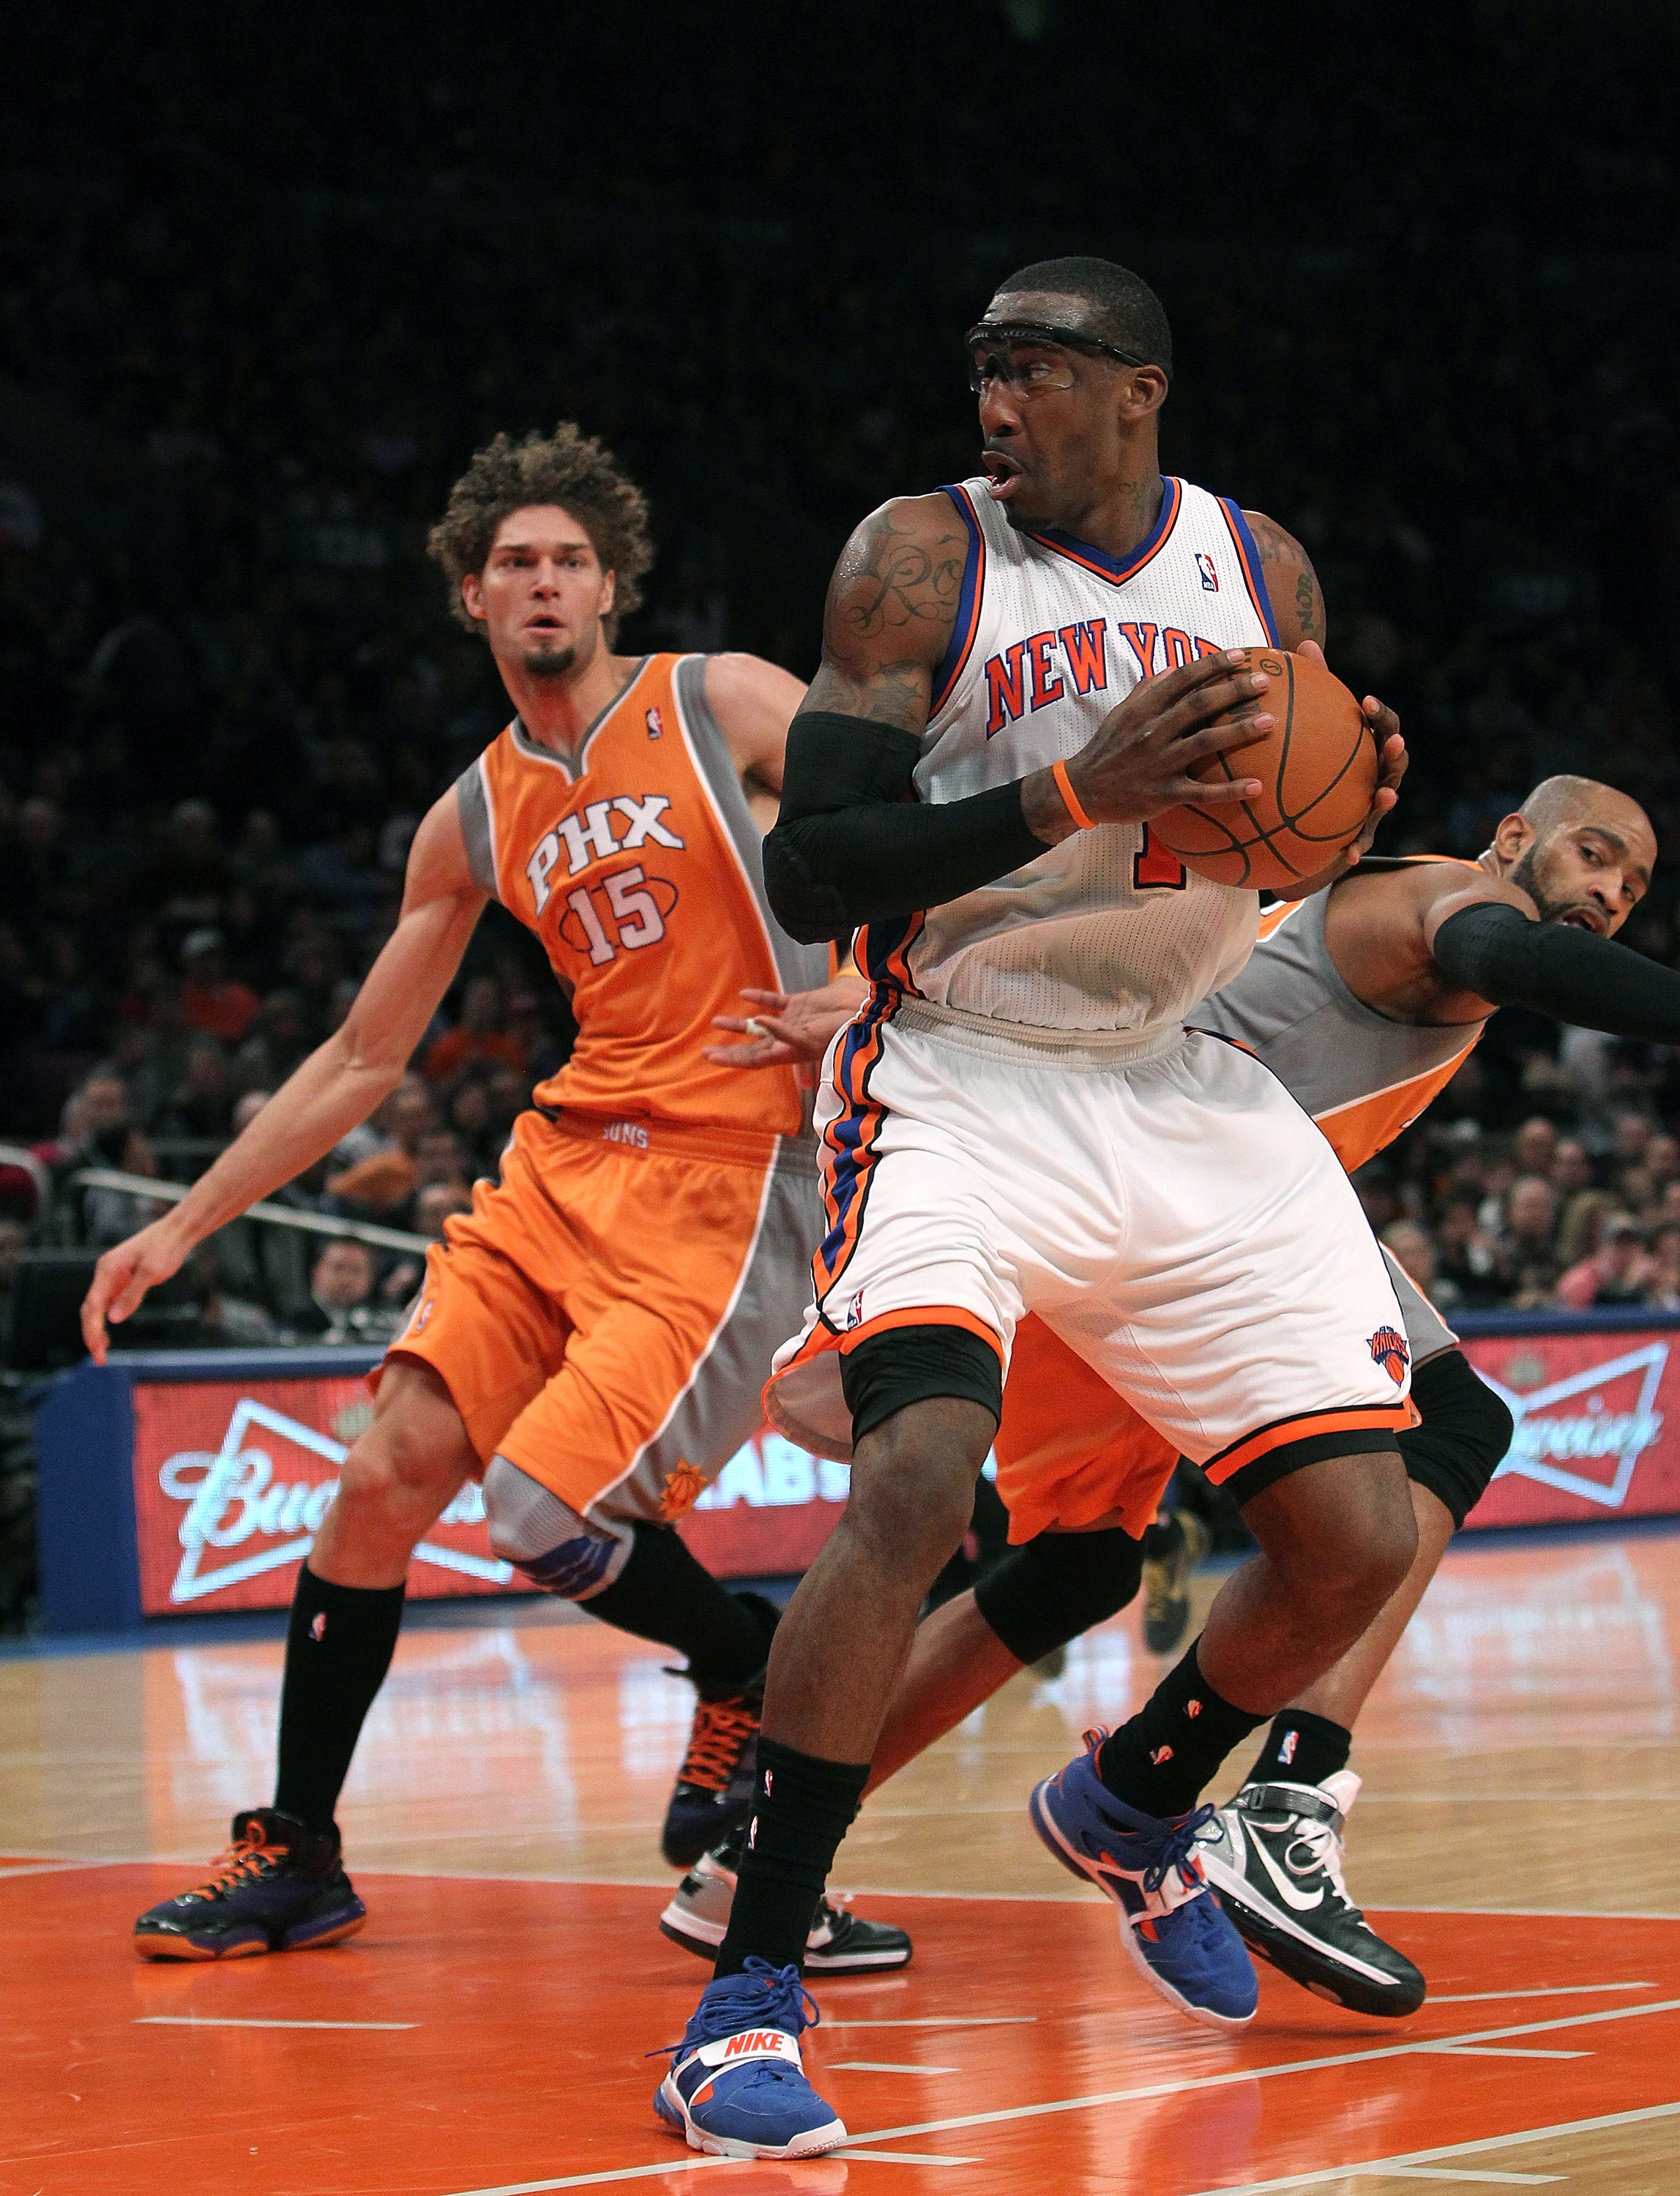 NEW YORK, NY - JANUARY 17:  Amar'e Stoudemire #1 of the New York Knicks goes to the basket against the Phoenix Suns at Madison Square Garden on January 17, 2011 in New York City. NOTE TO USER: User expressly acknowledges and agrees that, by downloading an